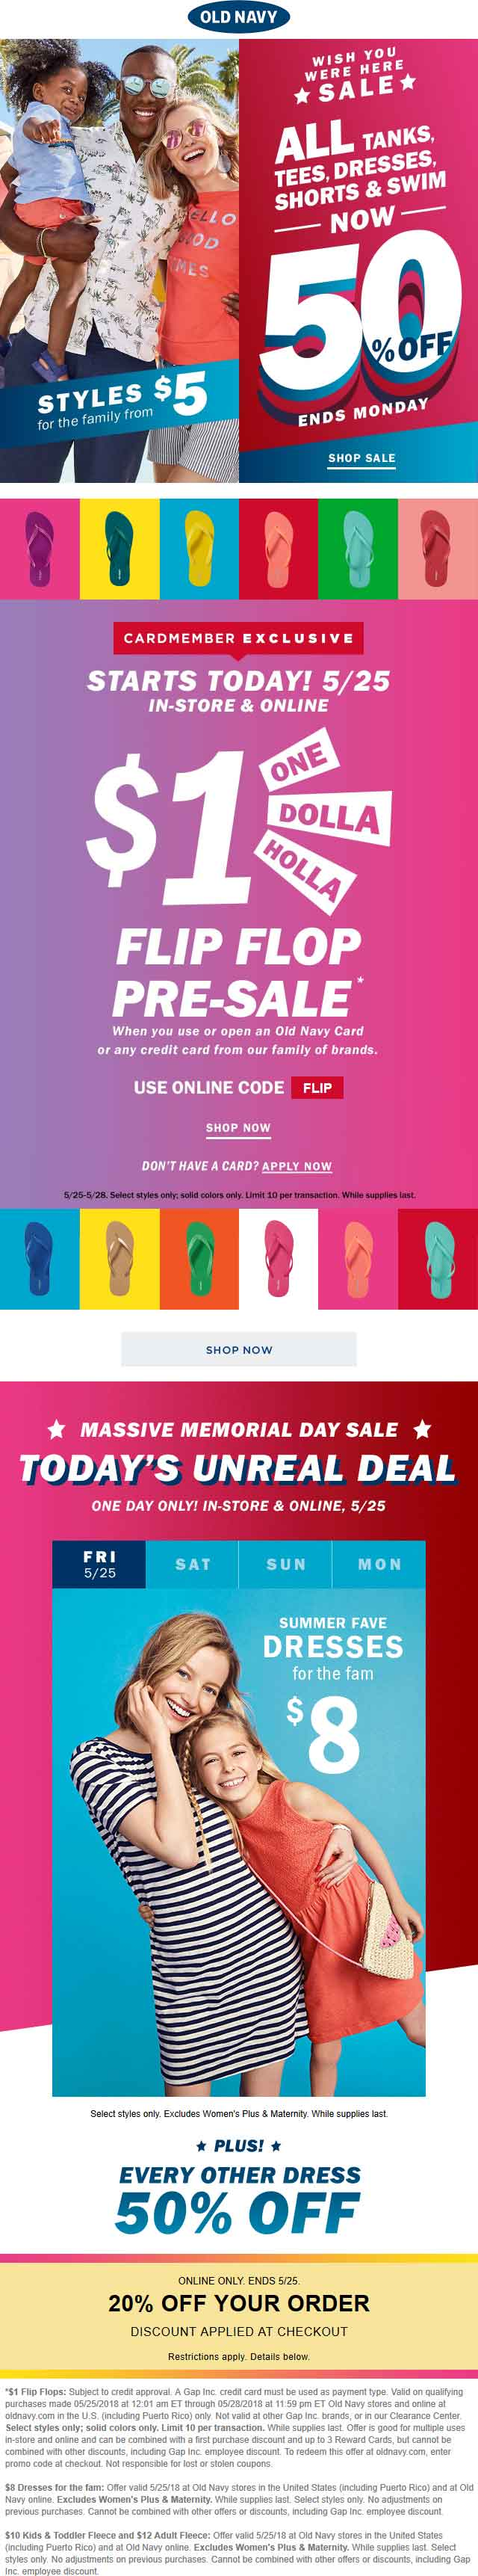 OldNavy.com Promo Coupon $1 flip flops & more at Old Navy, ditto online